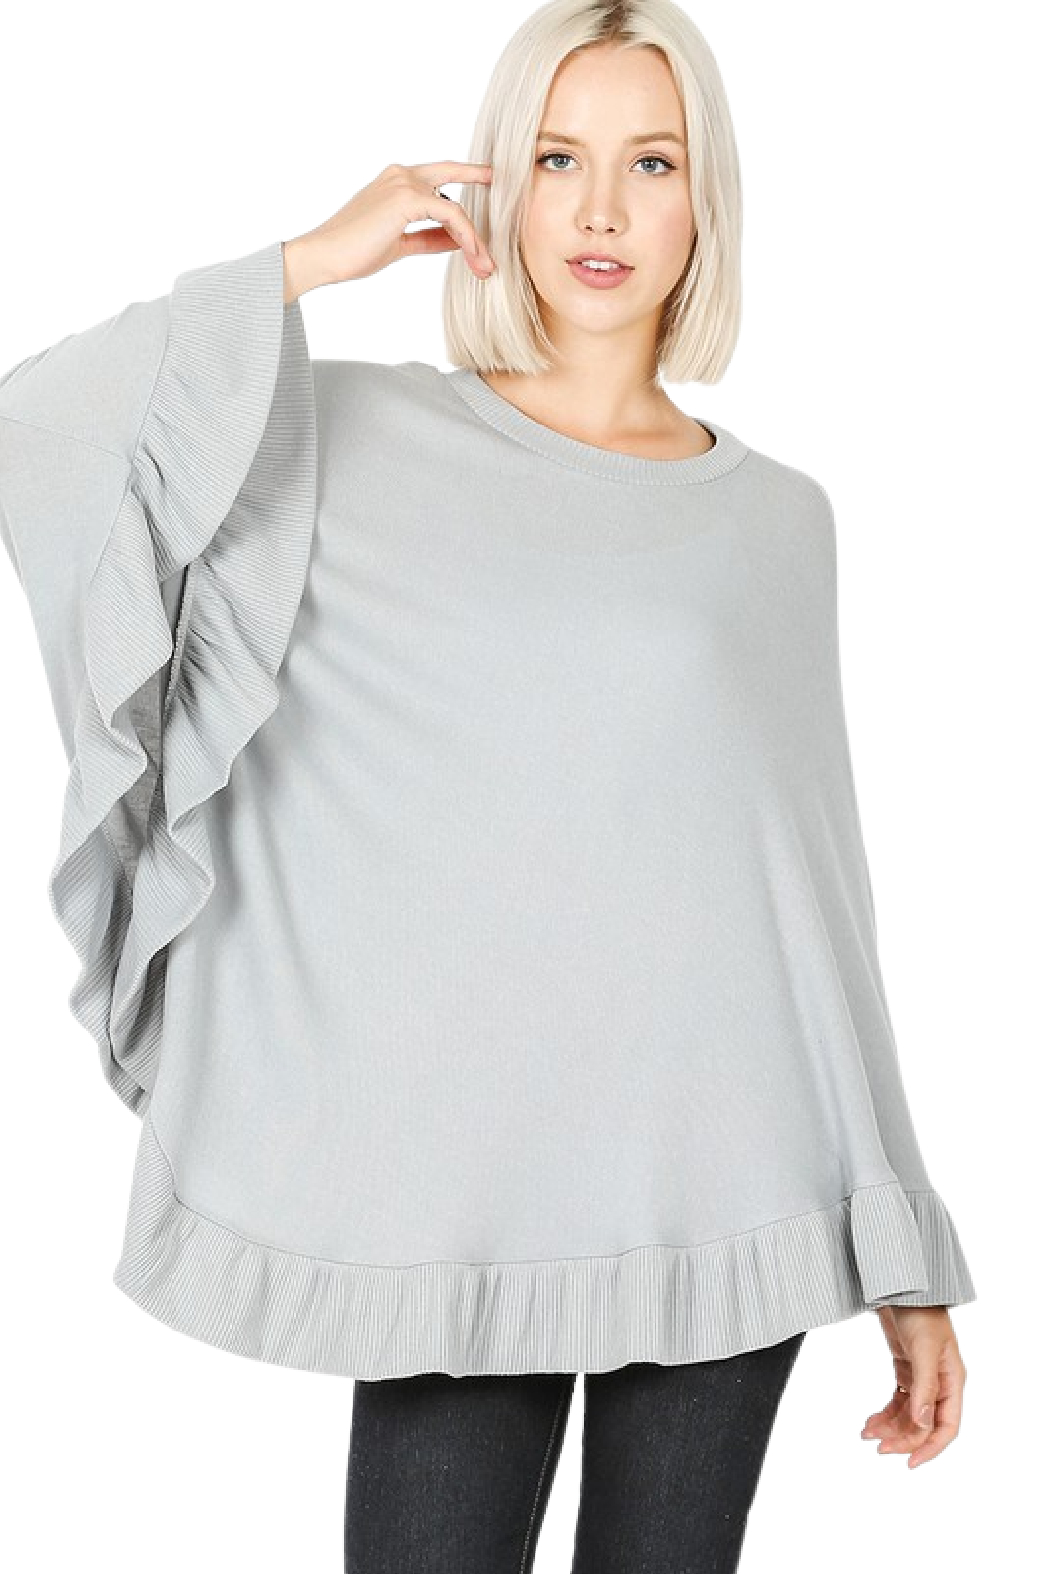 Zenana Outfitters Light Grey Poncho - Main Image